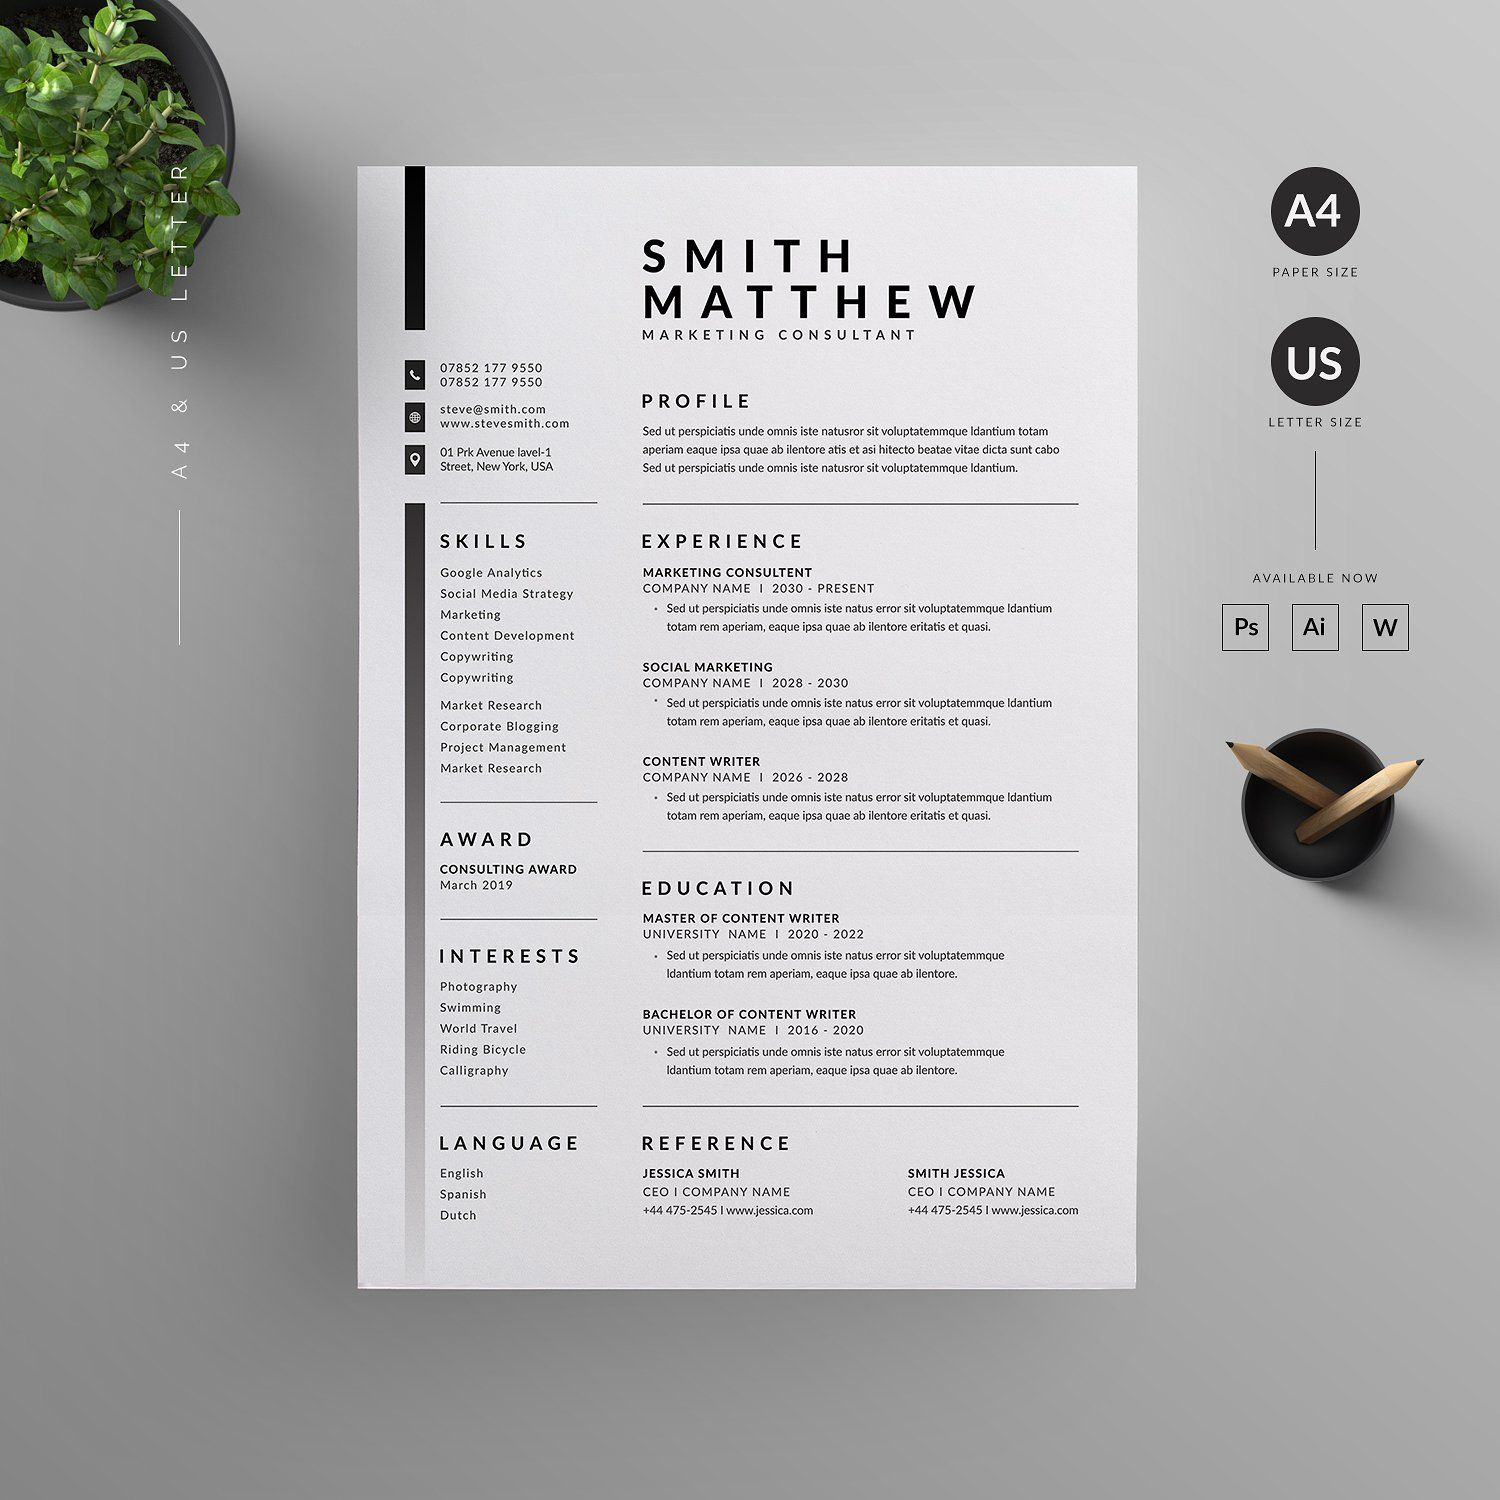 Resume Cv Resume Design Template Resume Cv Resume Design